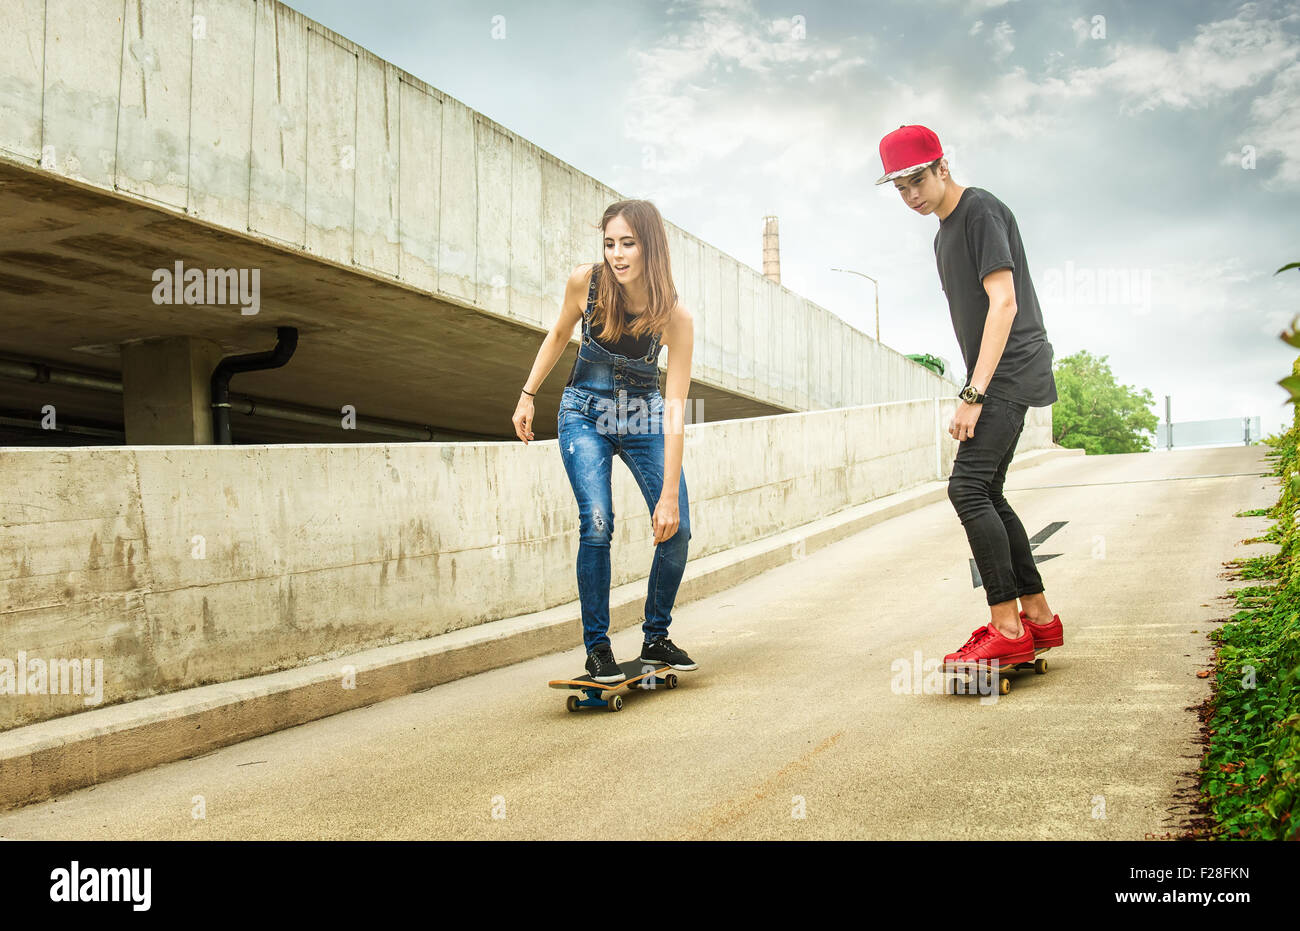 Skateboarder woman and man rolling down the slope - Stock Image